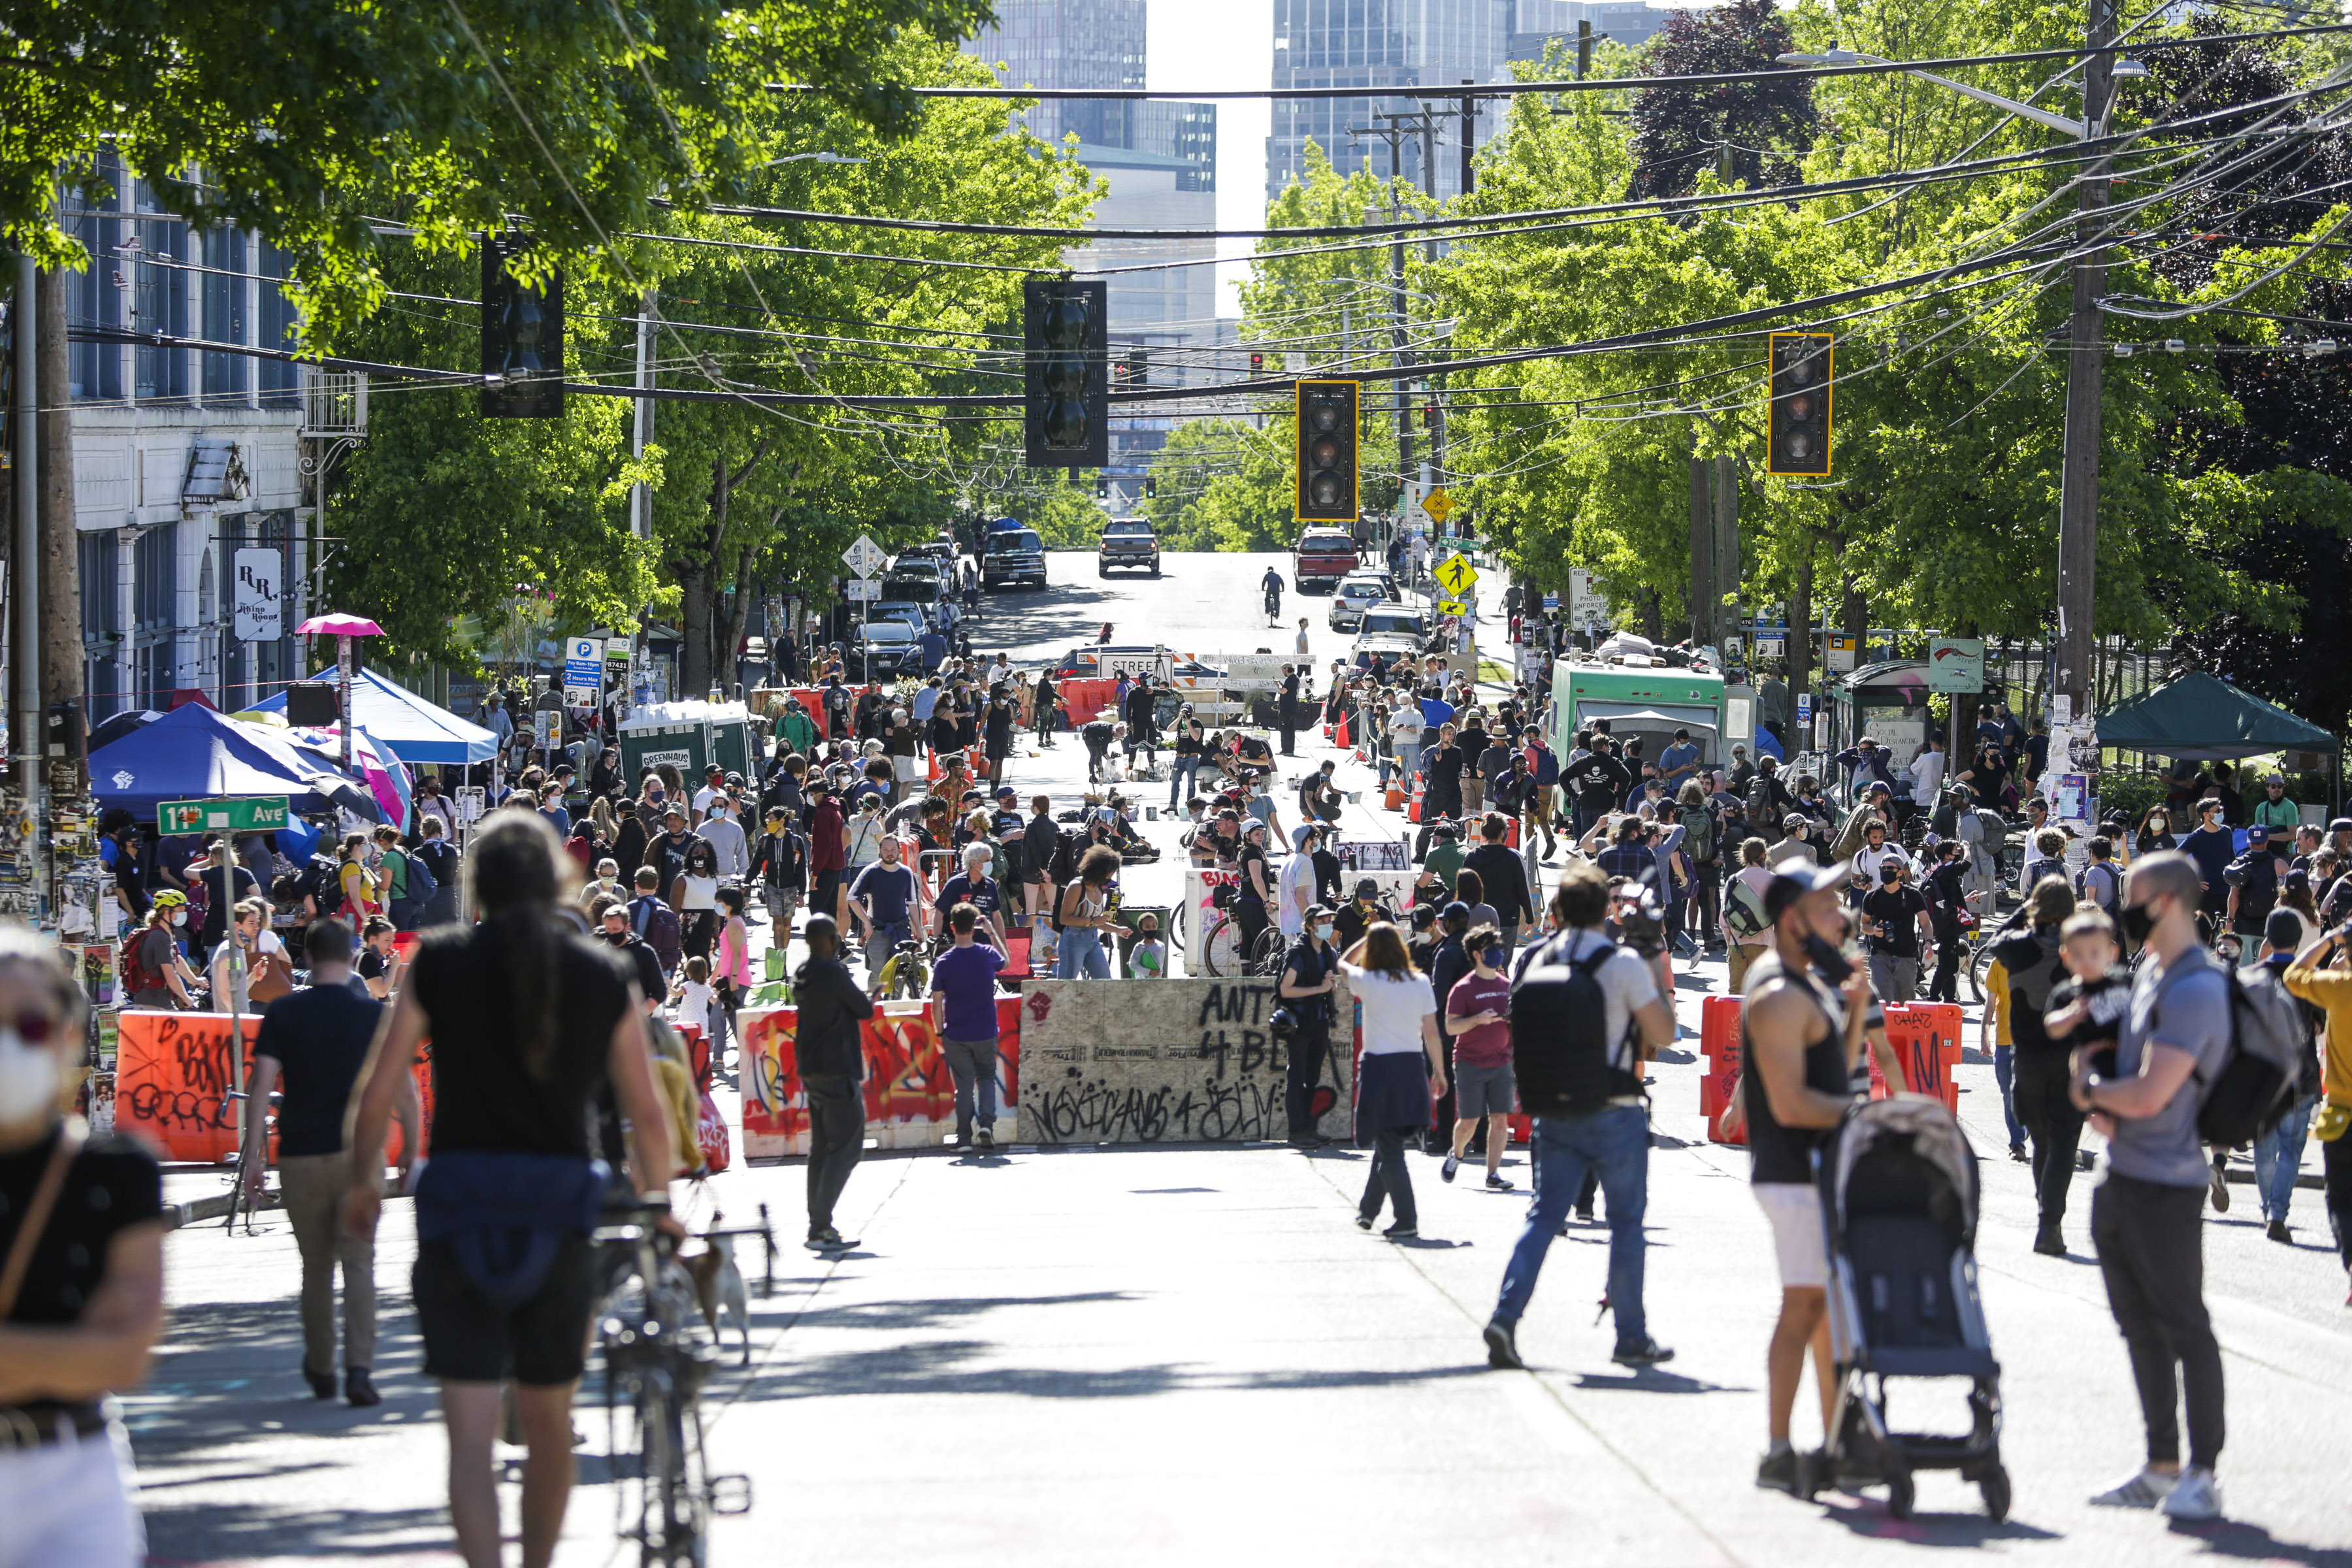 People walk around the newly created Capitol Hill Autonomous Zone (CHAZ), in Seattle, Washington on June 11, 2020. - The area surrounding the East Precinct building has come to be known as the CHAZ, Capitol Hill Autonomous Zone. Volunteer medics are available to tend to medical needs, alongside tents with medical supplies, gourmet food donated form local restaurants, fruit, snacks, water bottles free for whomever needed them. (Photo by JASON REDMOND/AFP via Getty Images)